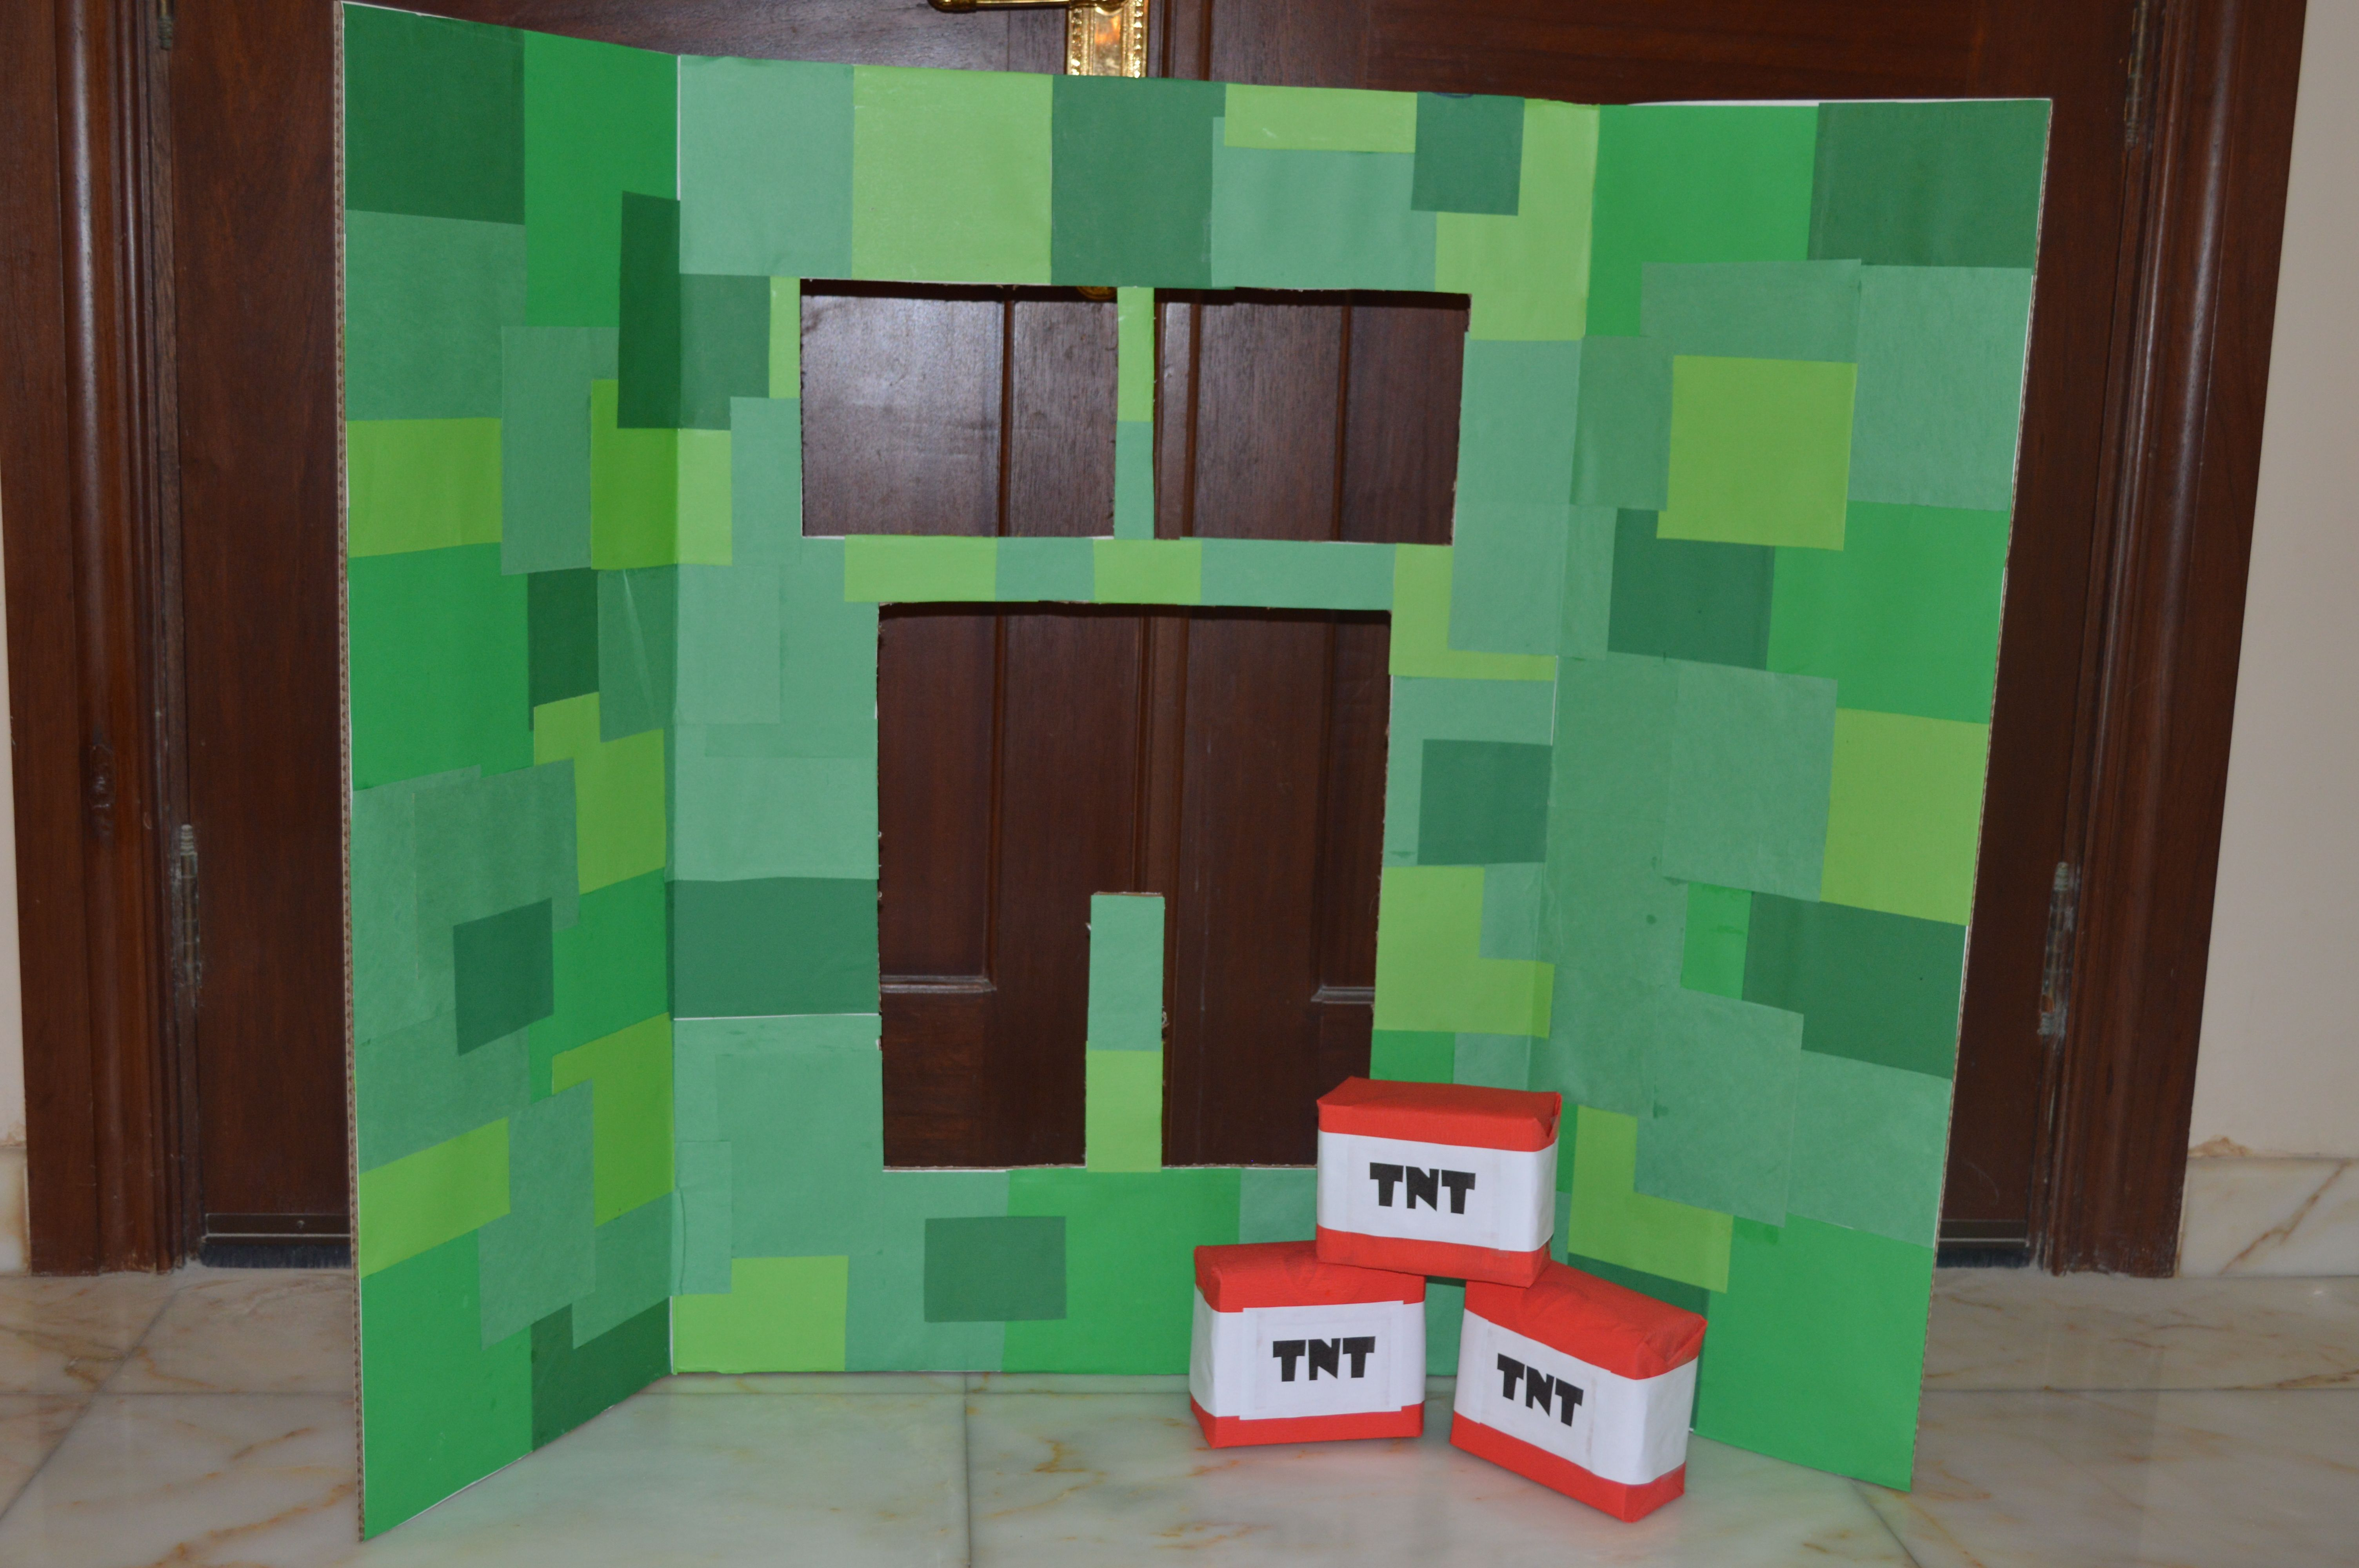 Creeper Toss --- a huge hit for the little ones including the not so little ones. :-D This took hard work. Had to cut and paste different shades of green squares to hopefully get the creeper face effect. I also had to wrap 3 small boxes with red crepe paper and labeled them with TNT printout. :-)